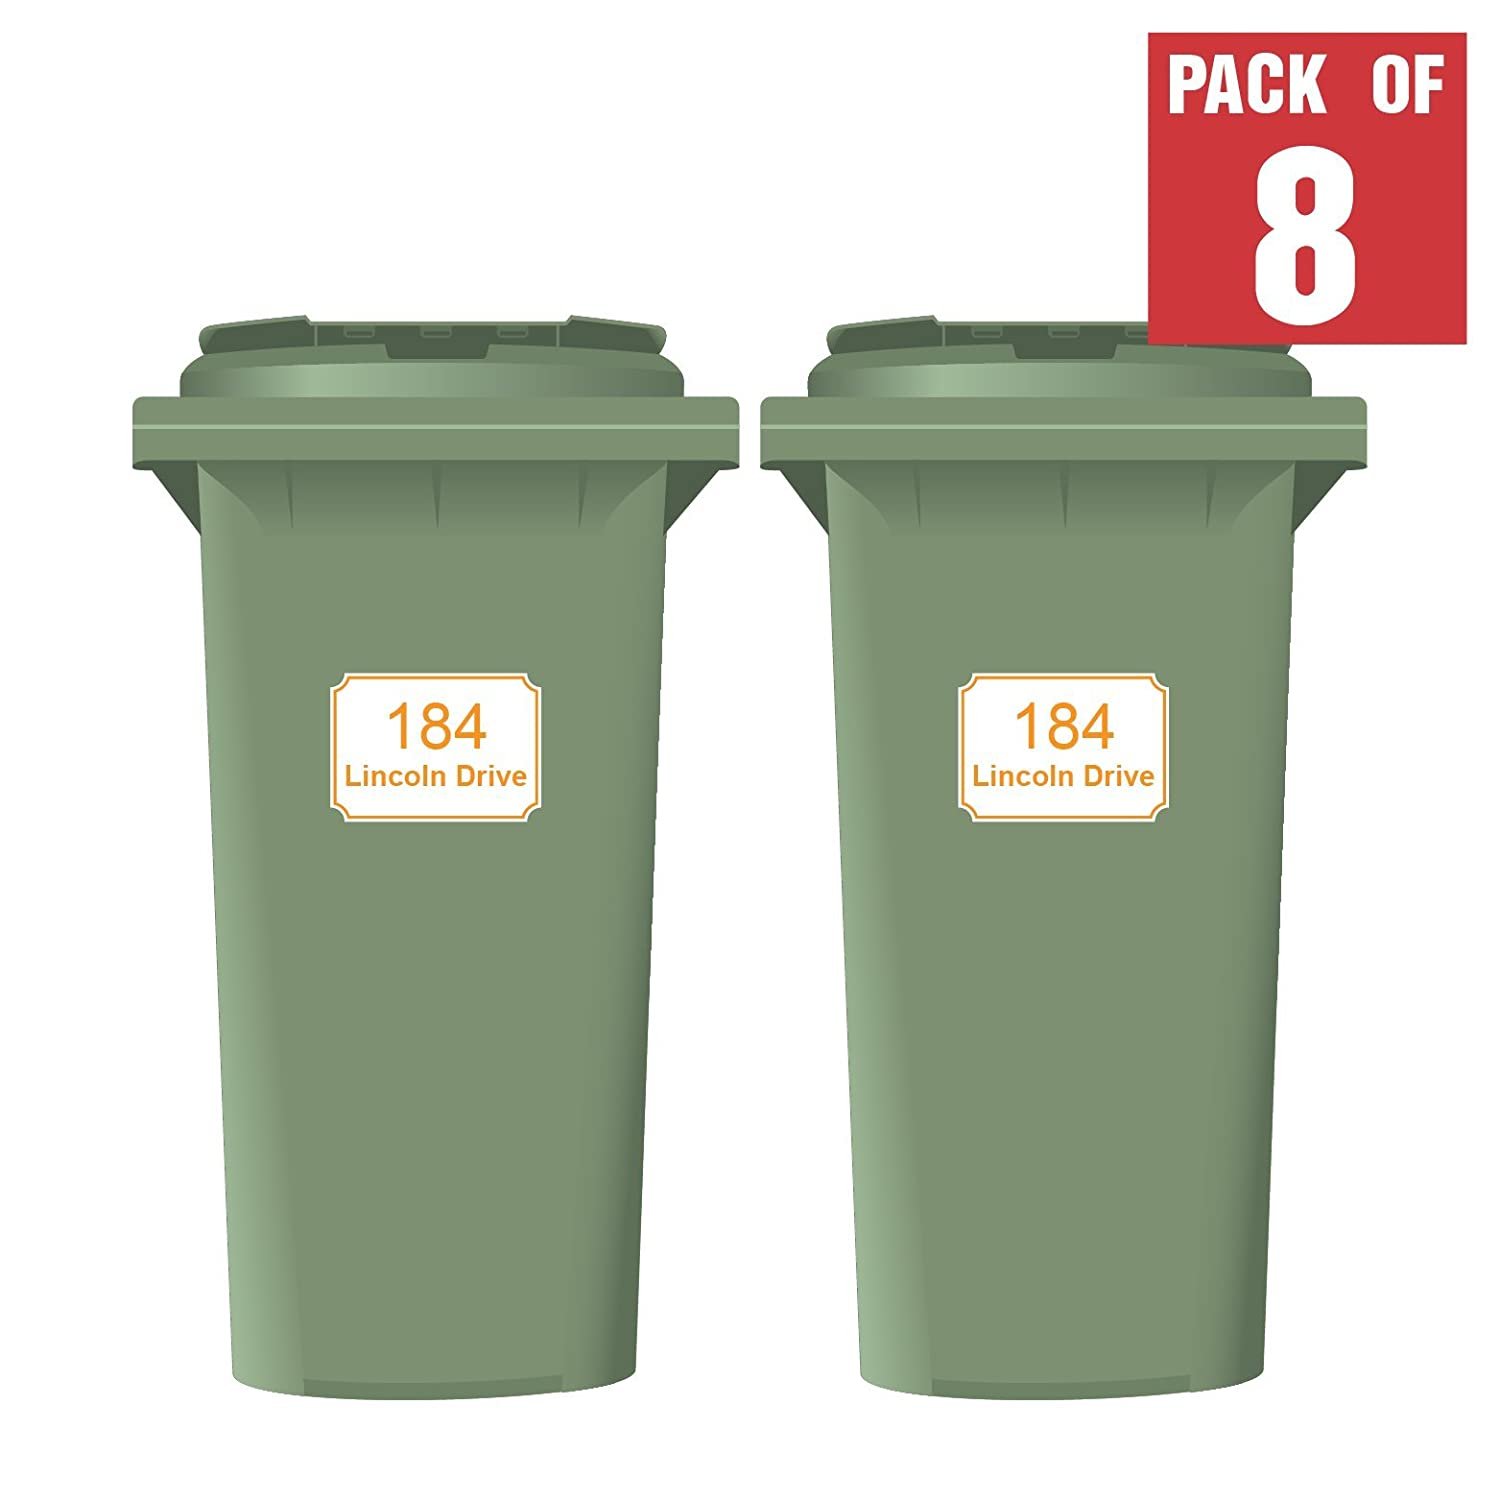 Wheelie Bin Custom Printed Numbers Classic Style A4 Size Pack of 4 Brown MyWheelieBin